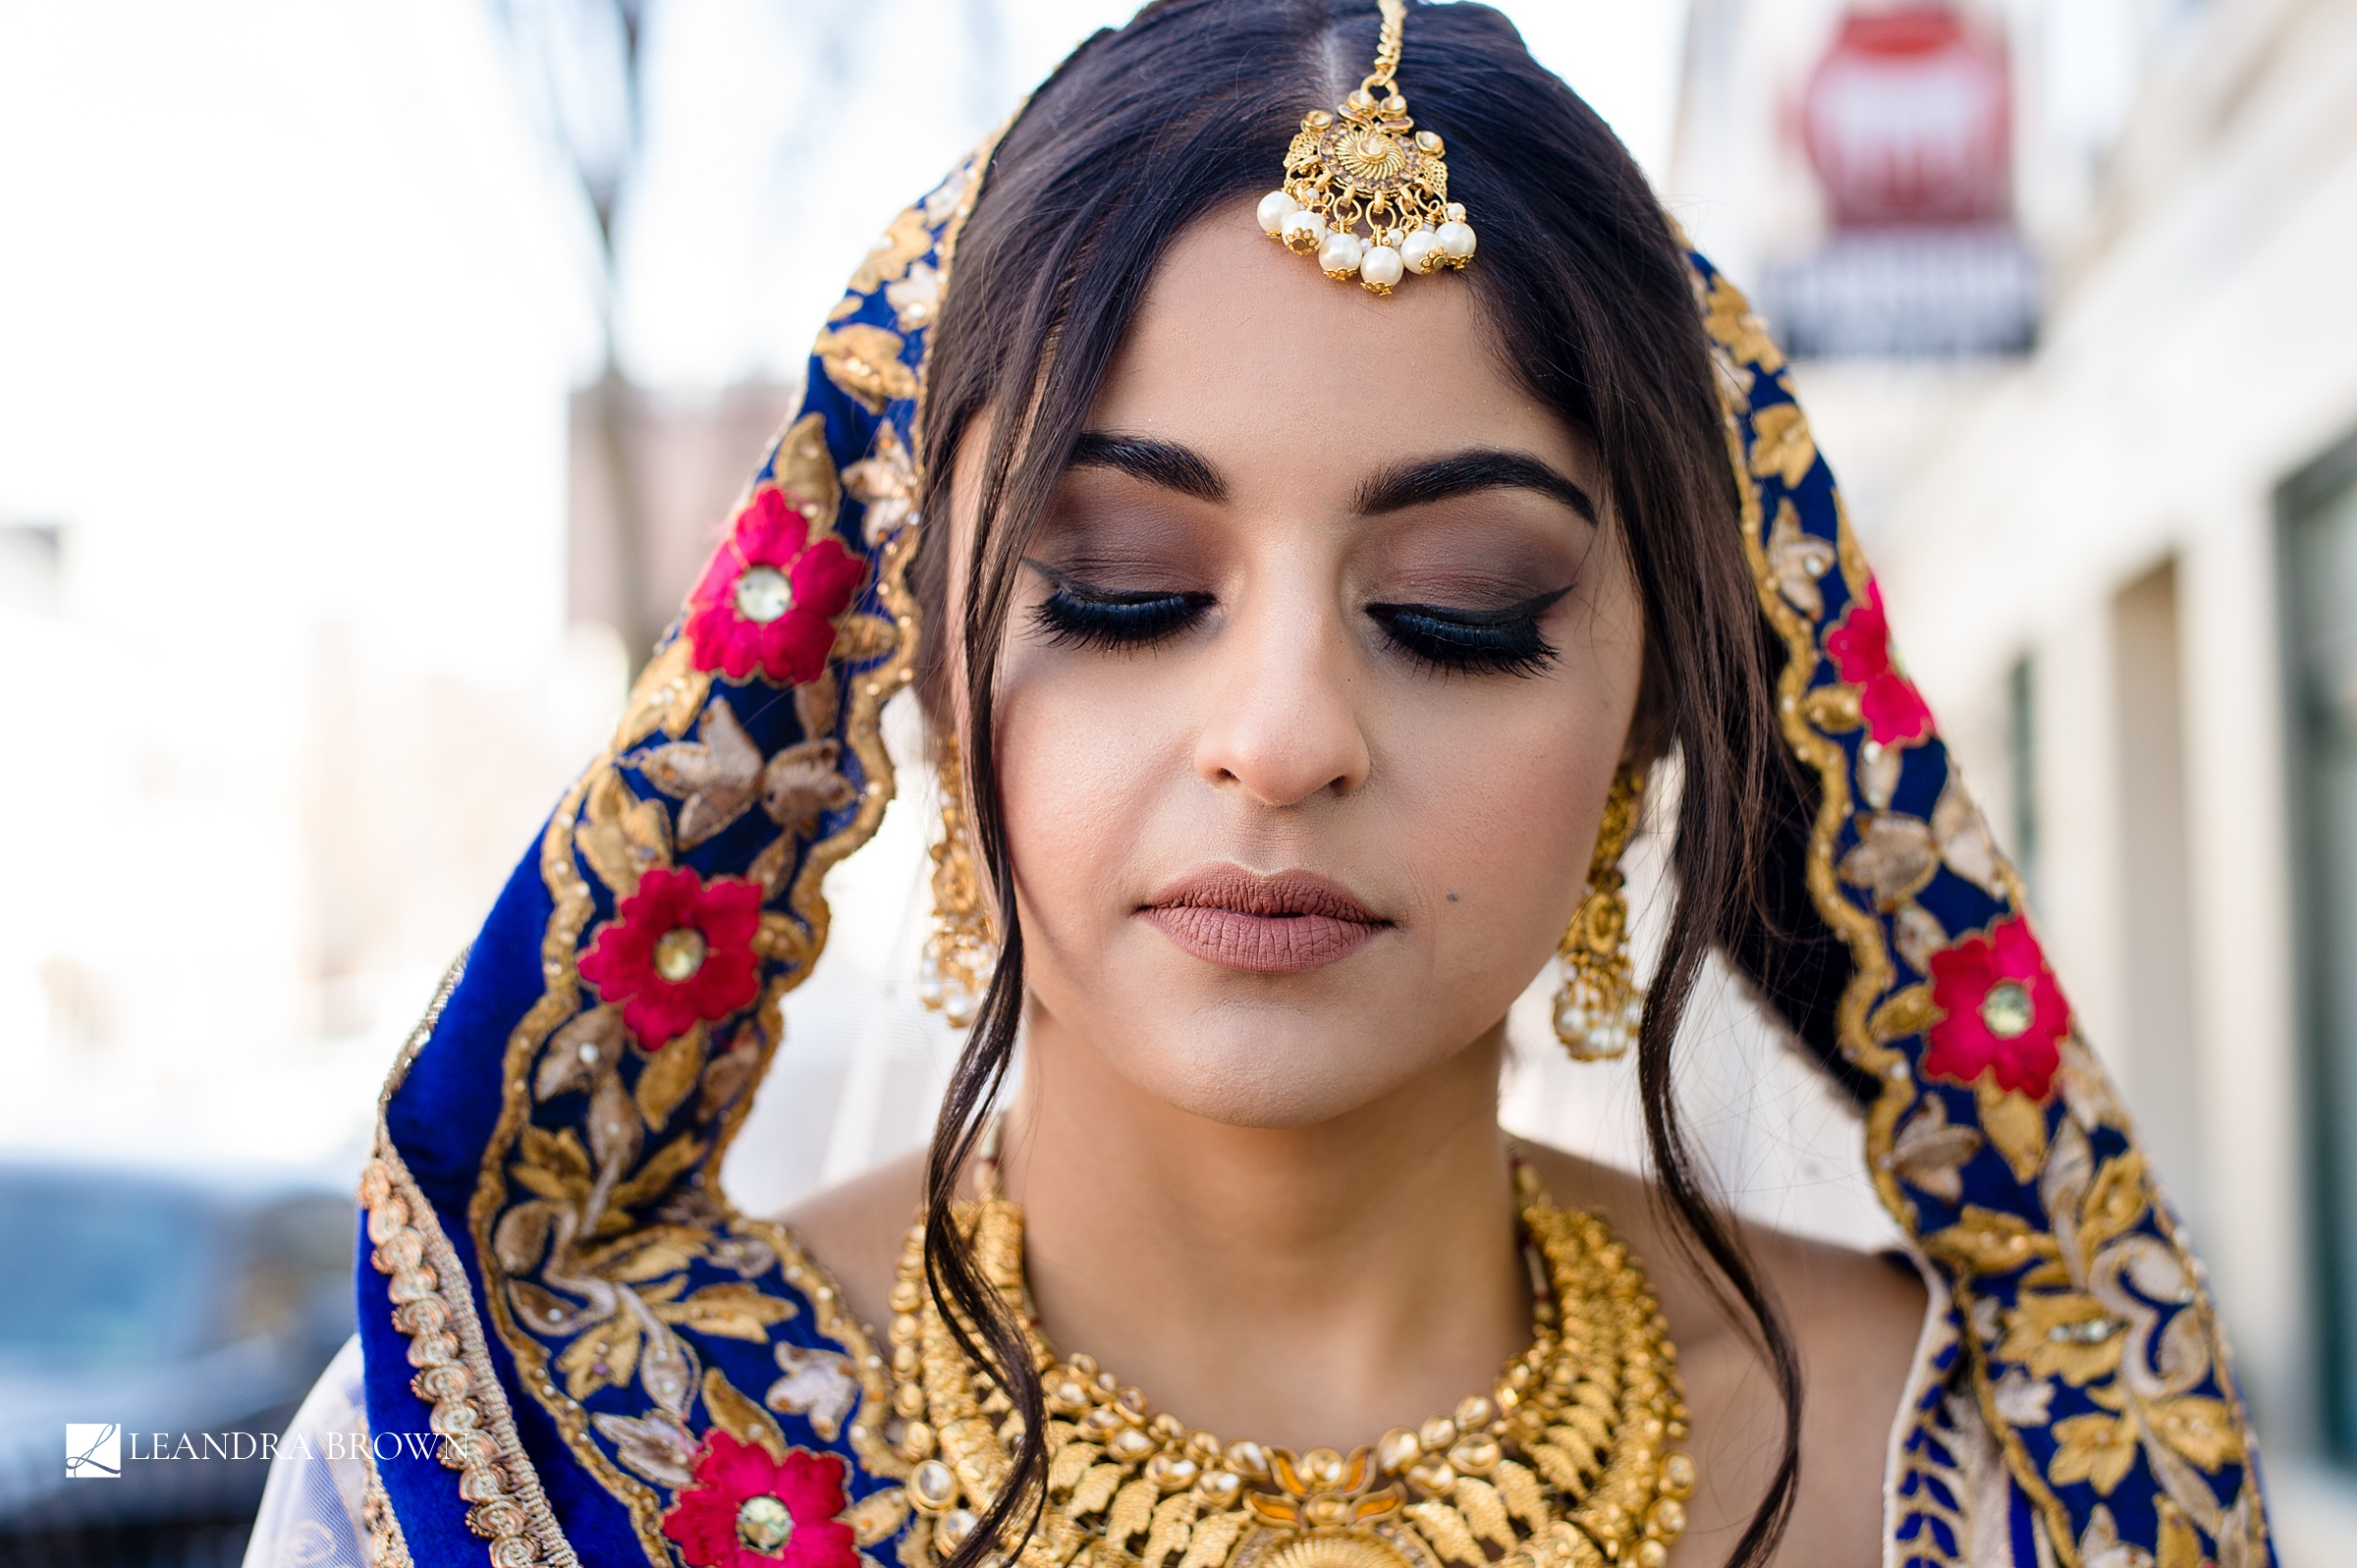 South Asian Wedding Photography.LeandraBrownPhotography_0076.jpg